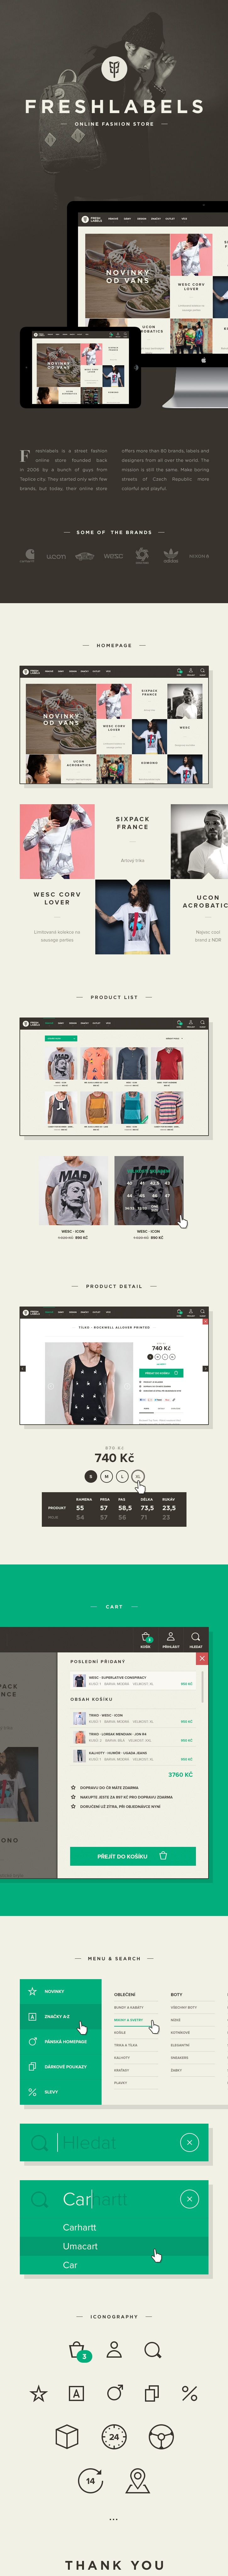 // website for freshlabels online fashion store. //